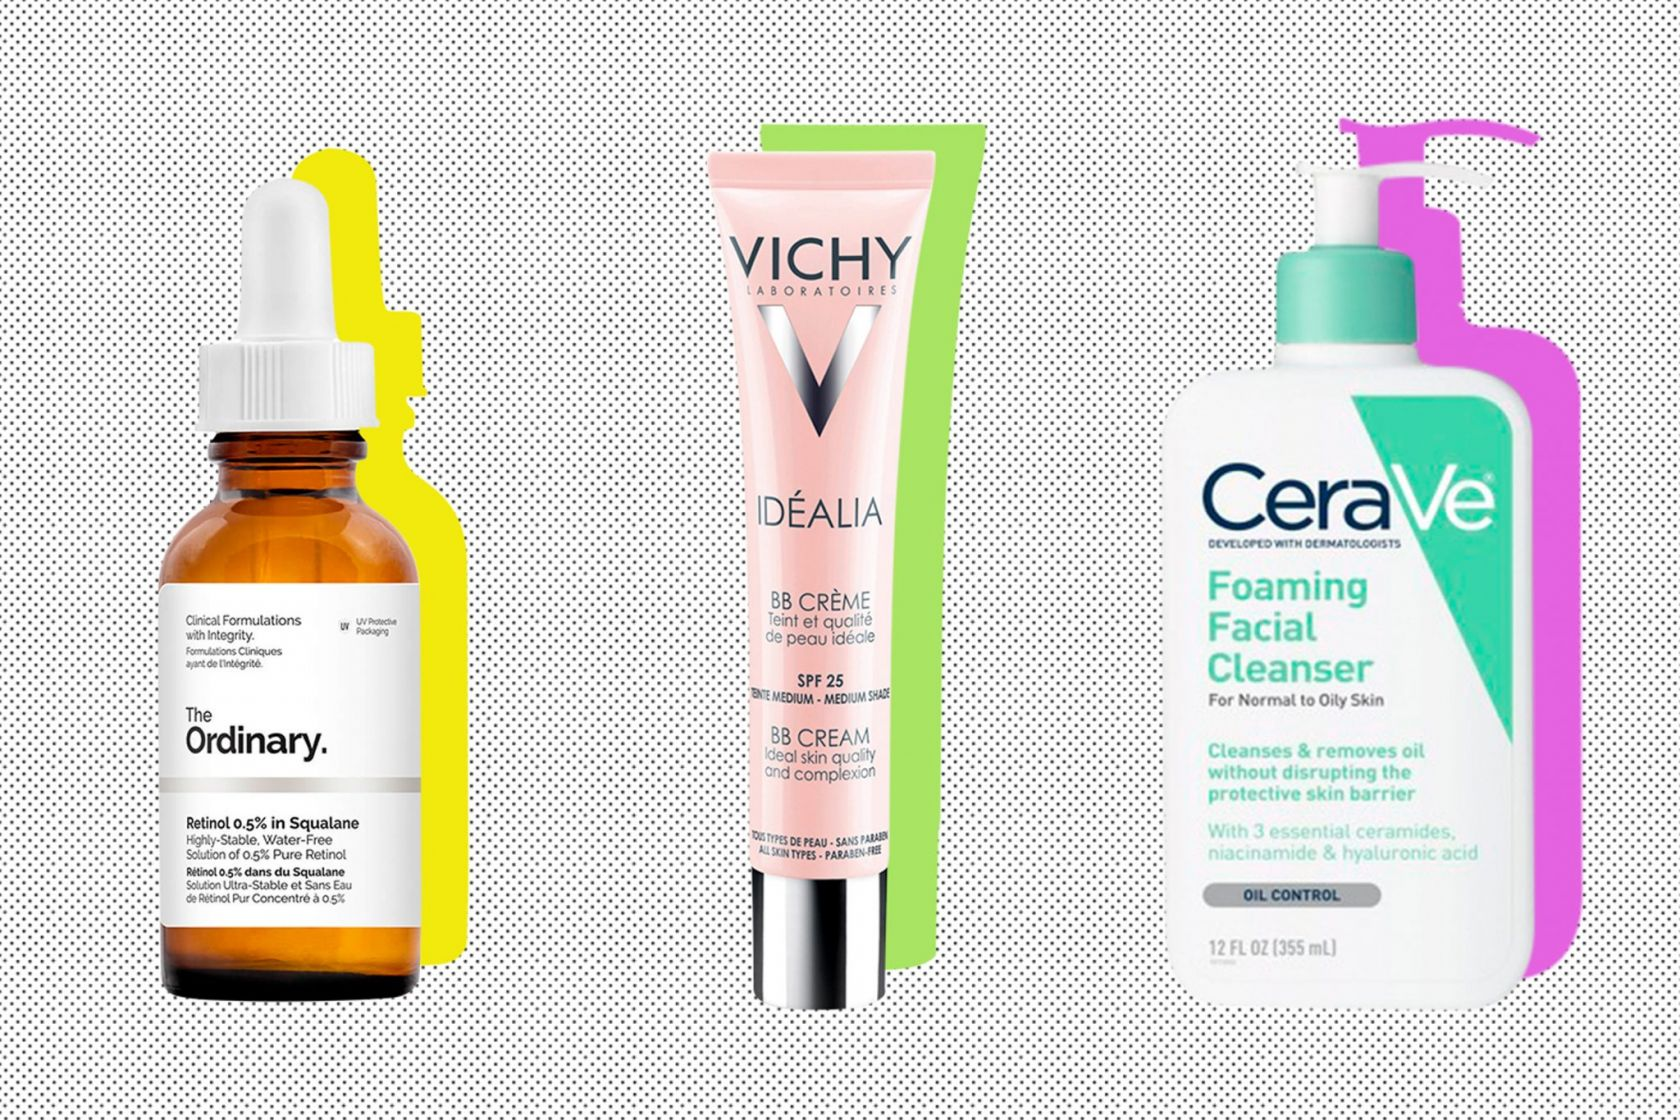 Best Skin Care Cream The Best Skincare Products According To Beauty Experts